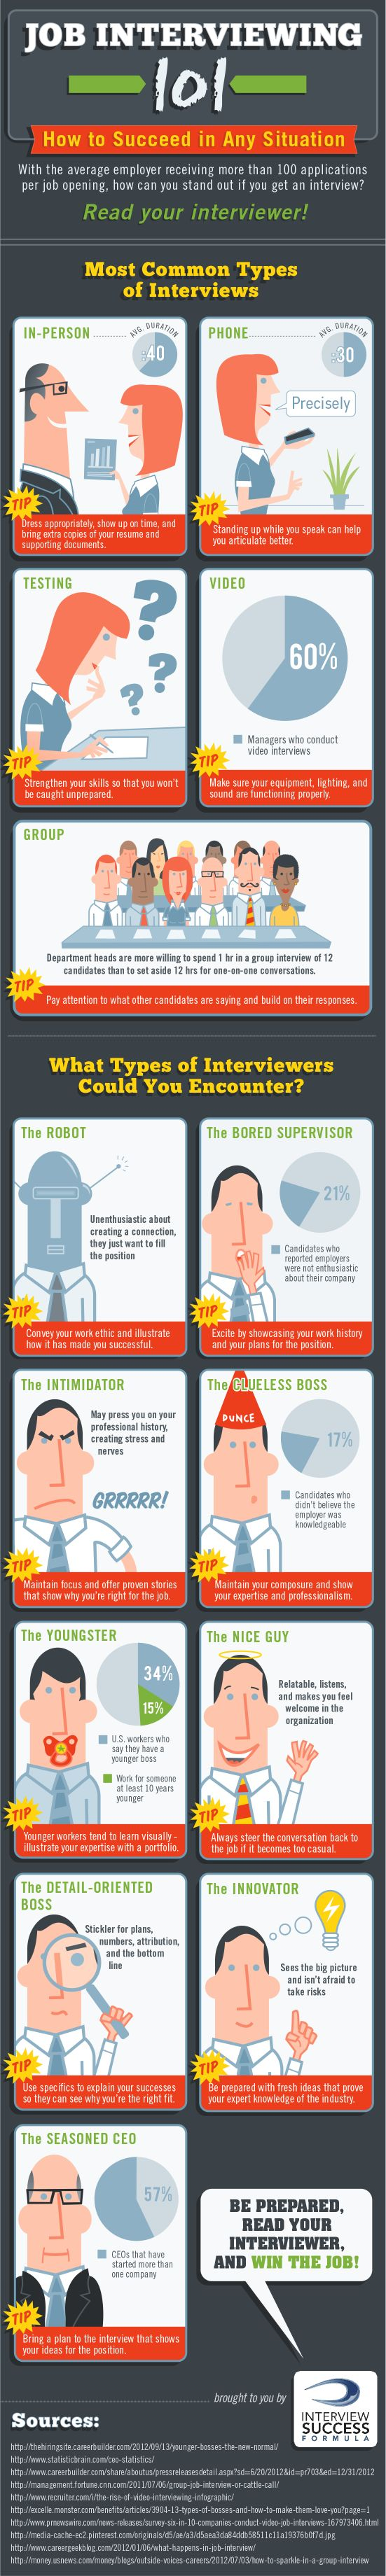 14 Job Interview Tips That Will Get You The Job Infographic Job